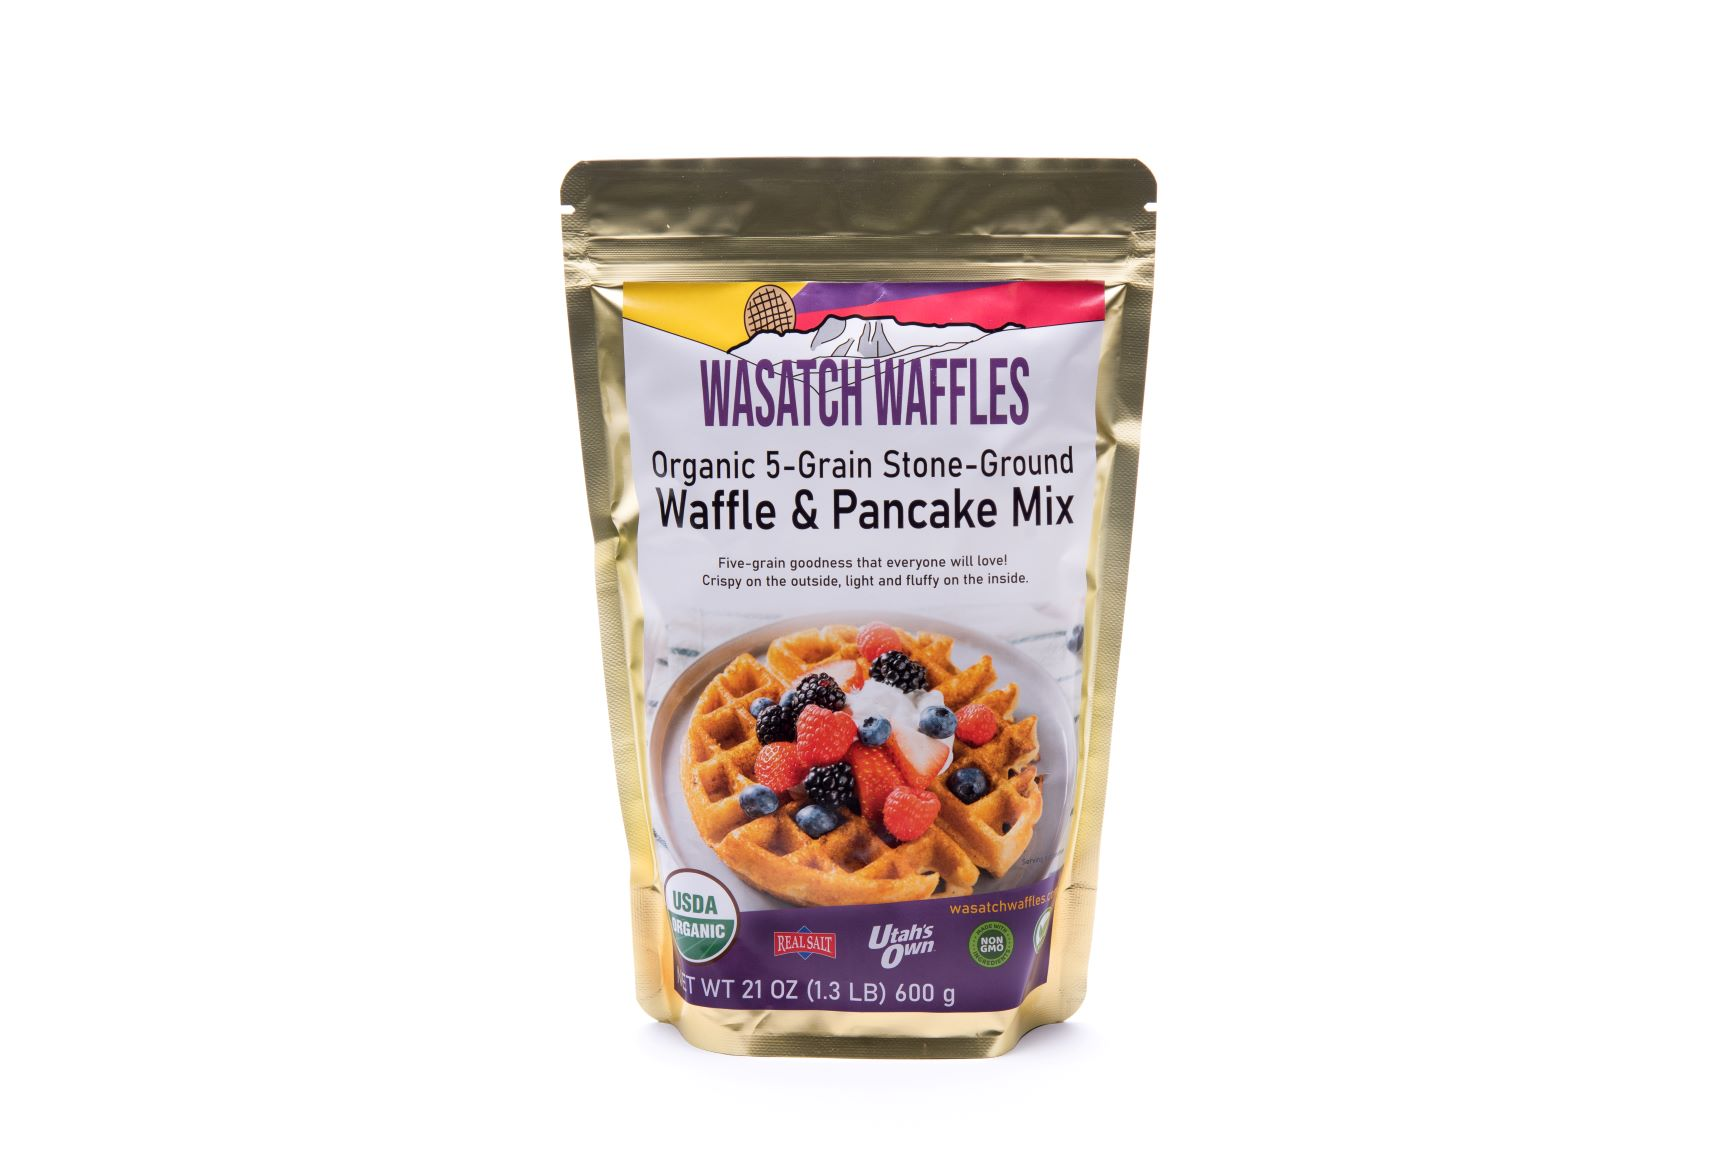 Organic Five-Grain Stone-Ground Waffle & Pancake Mix, 1 pouch